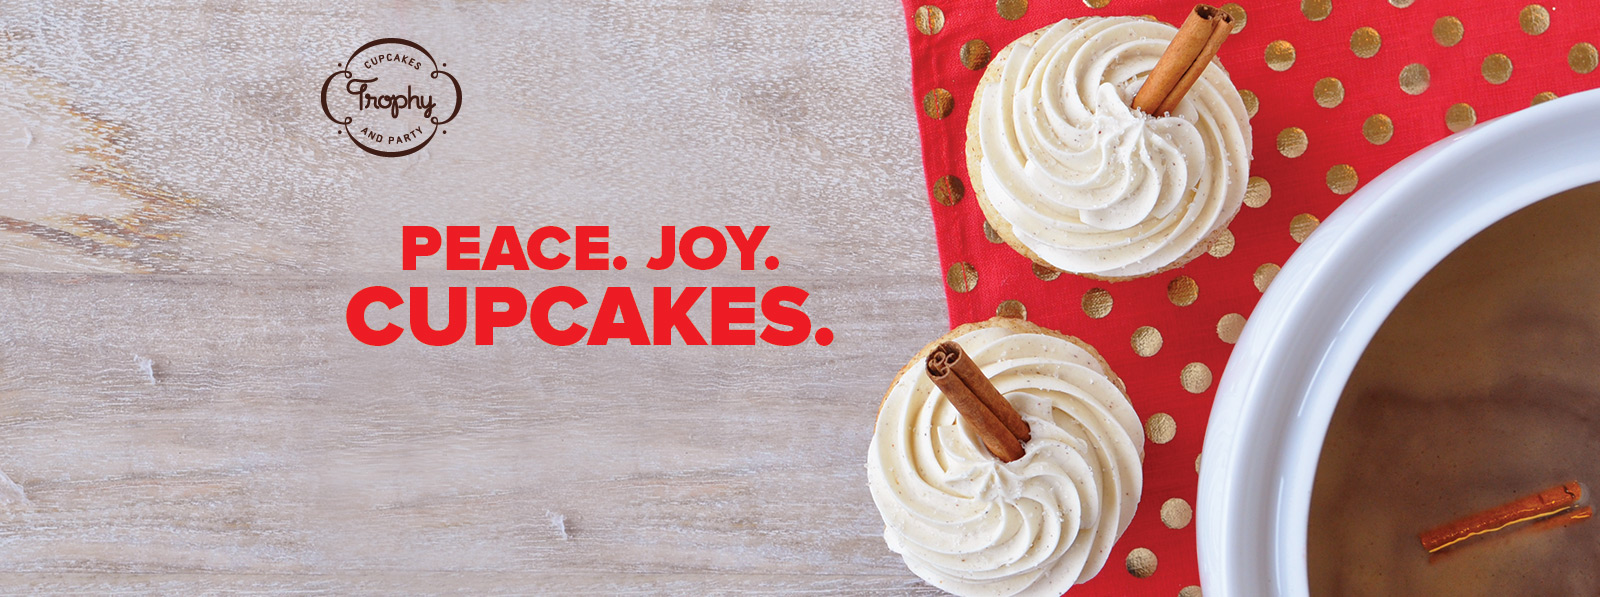 Peace Joy Cupcakes - Hot Buttered Rum